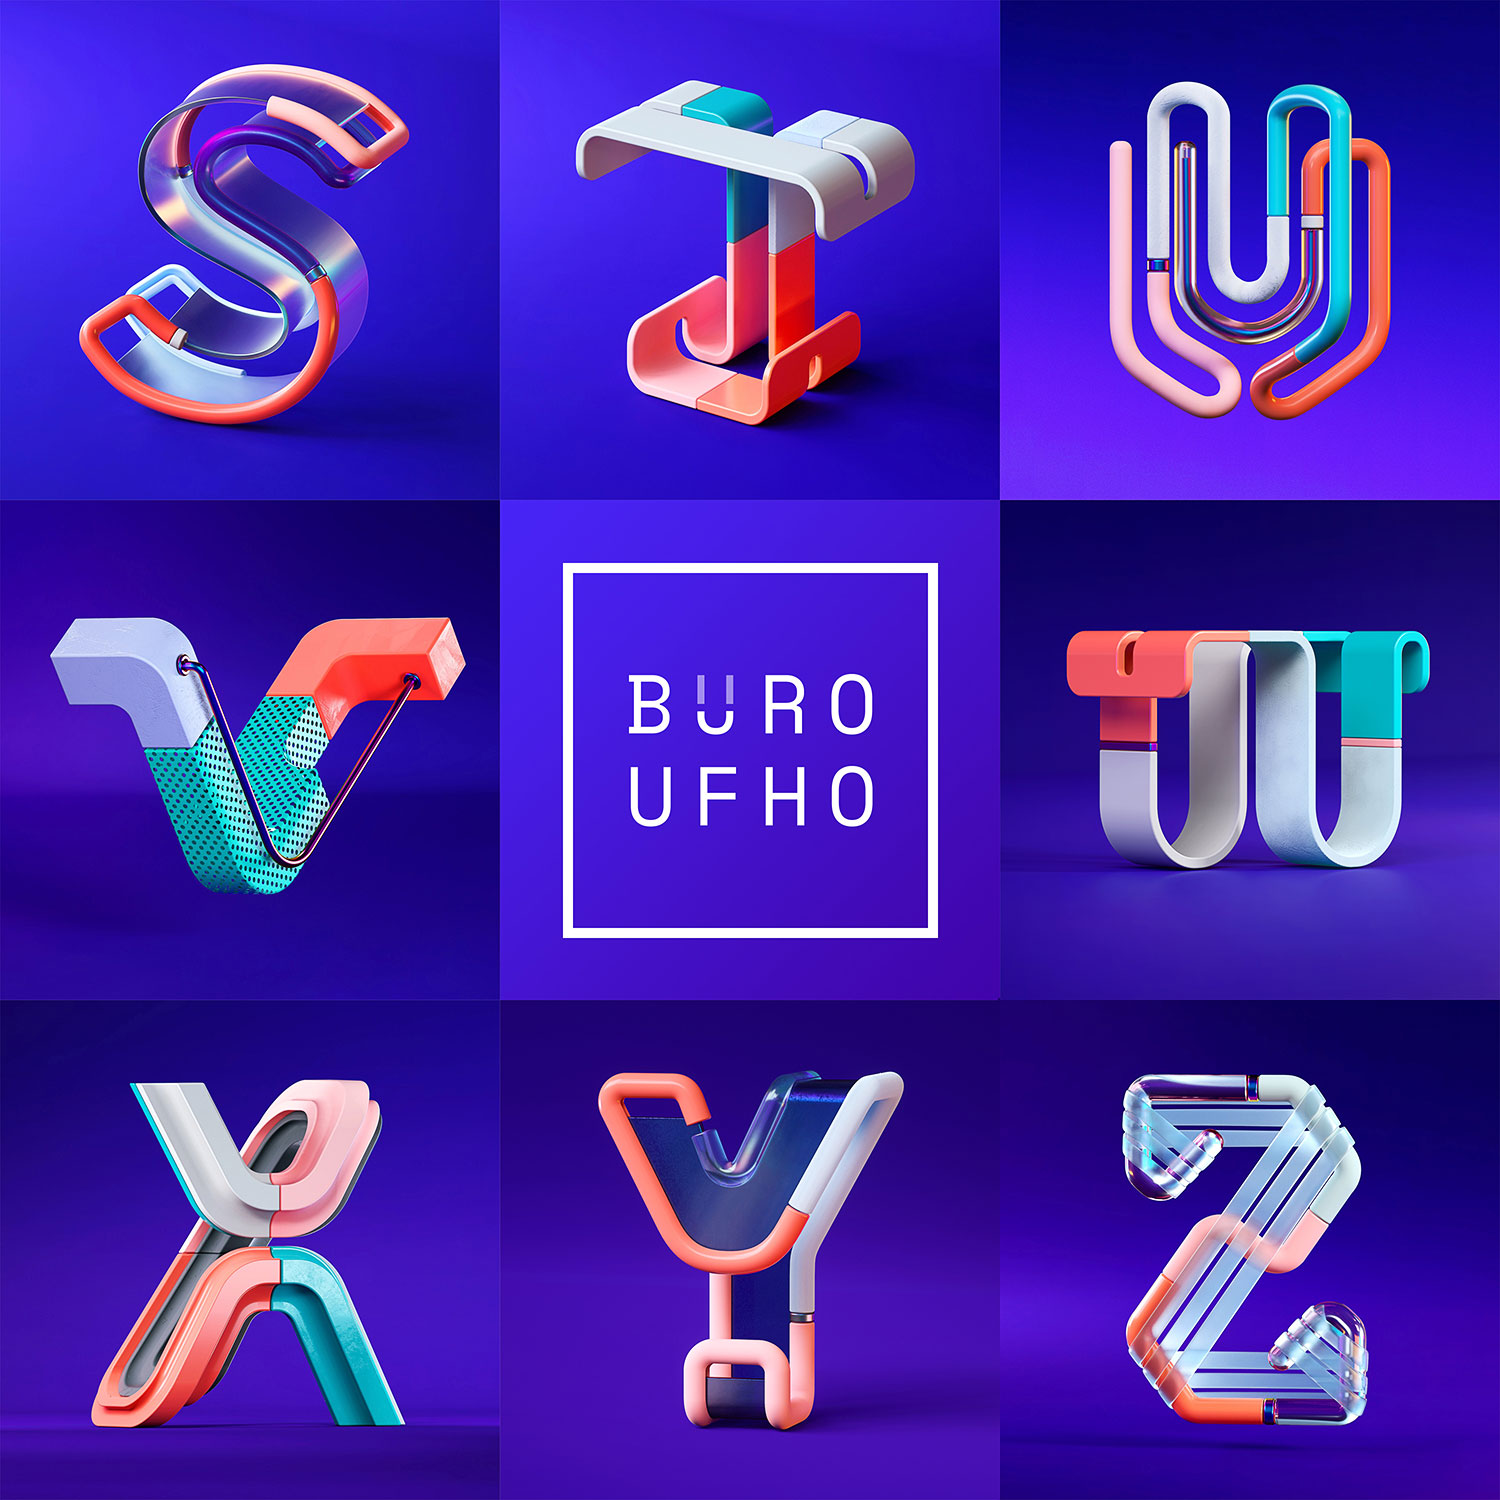 36 Days of Type 2018 - 3D letter S to Z visuals by Singapore based brand strategy and creative design consultancy, BÜRO UFHO.